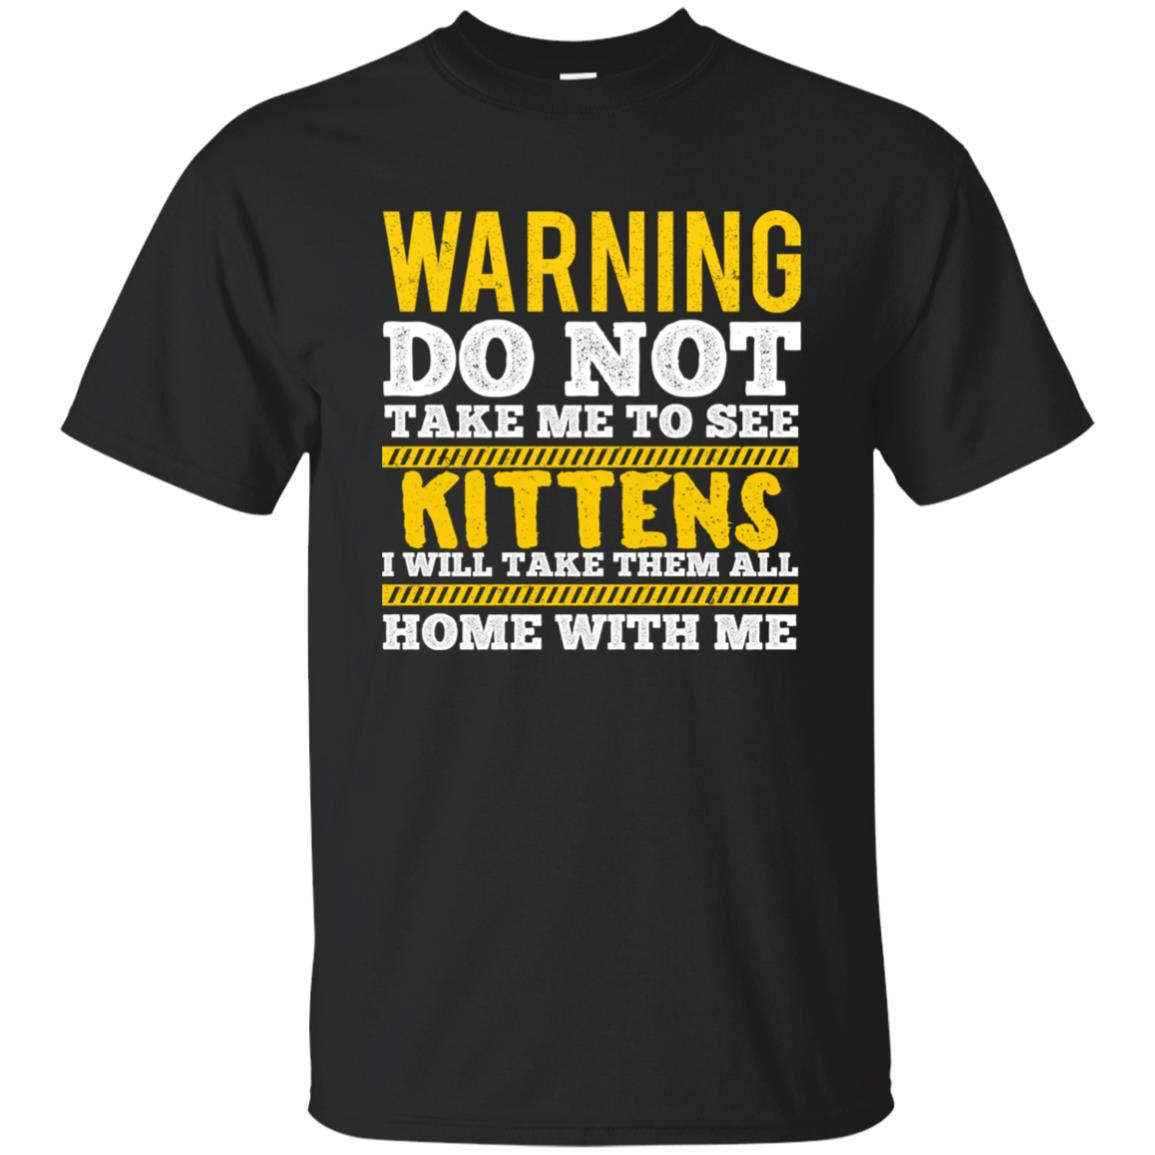 Do Not Take Me To See Kittens Funny Cat Lover Ls Unisex Short Sleeve